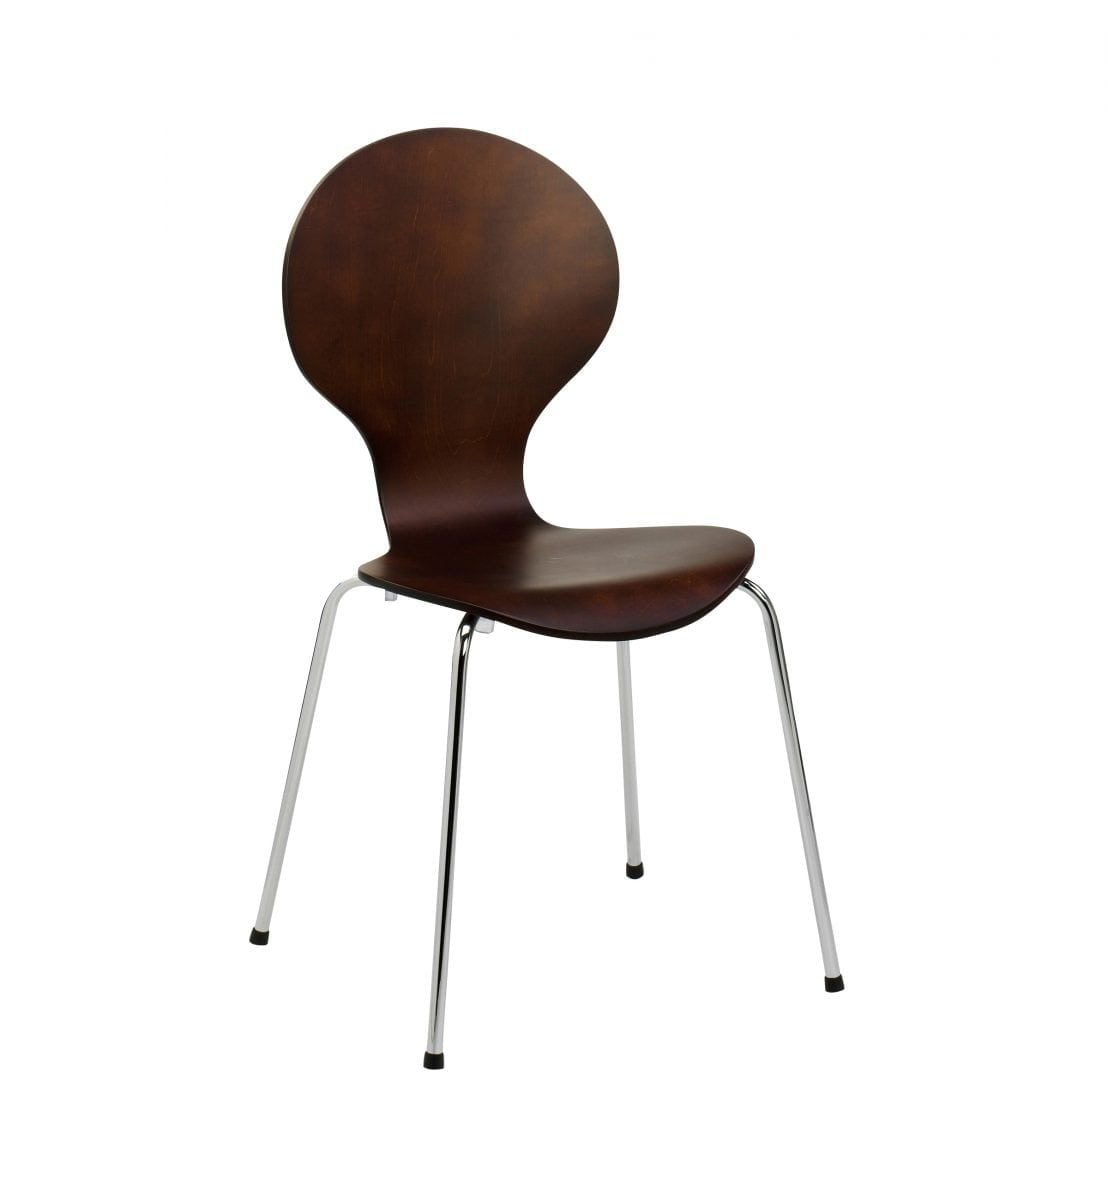 Superb At1W Modern Wenge Wooden Stackable Chair For Cafes Bars And Forskolin Free Trial Chair Design Images Forskolin Free Trialorg